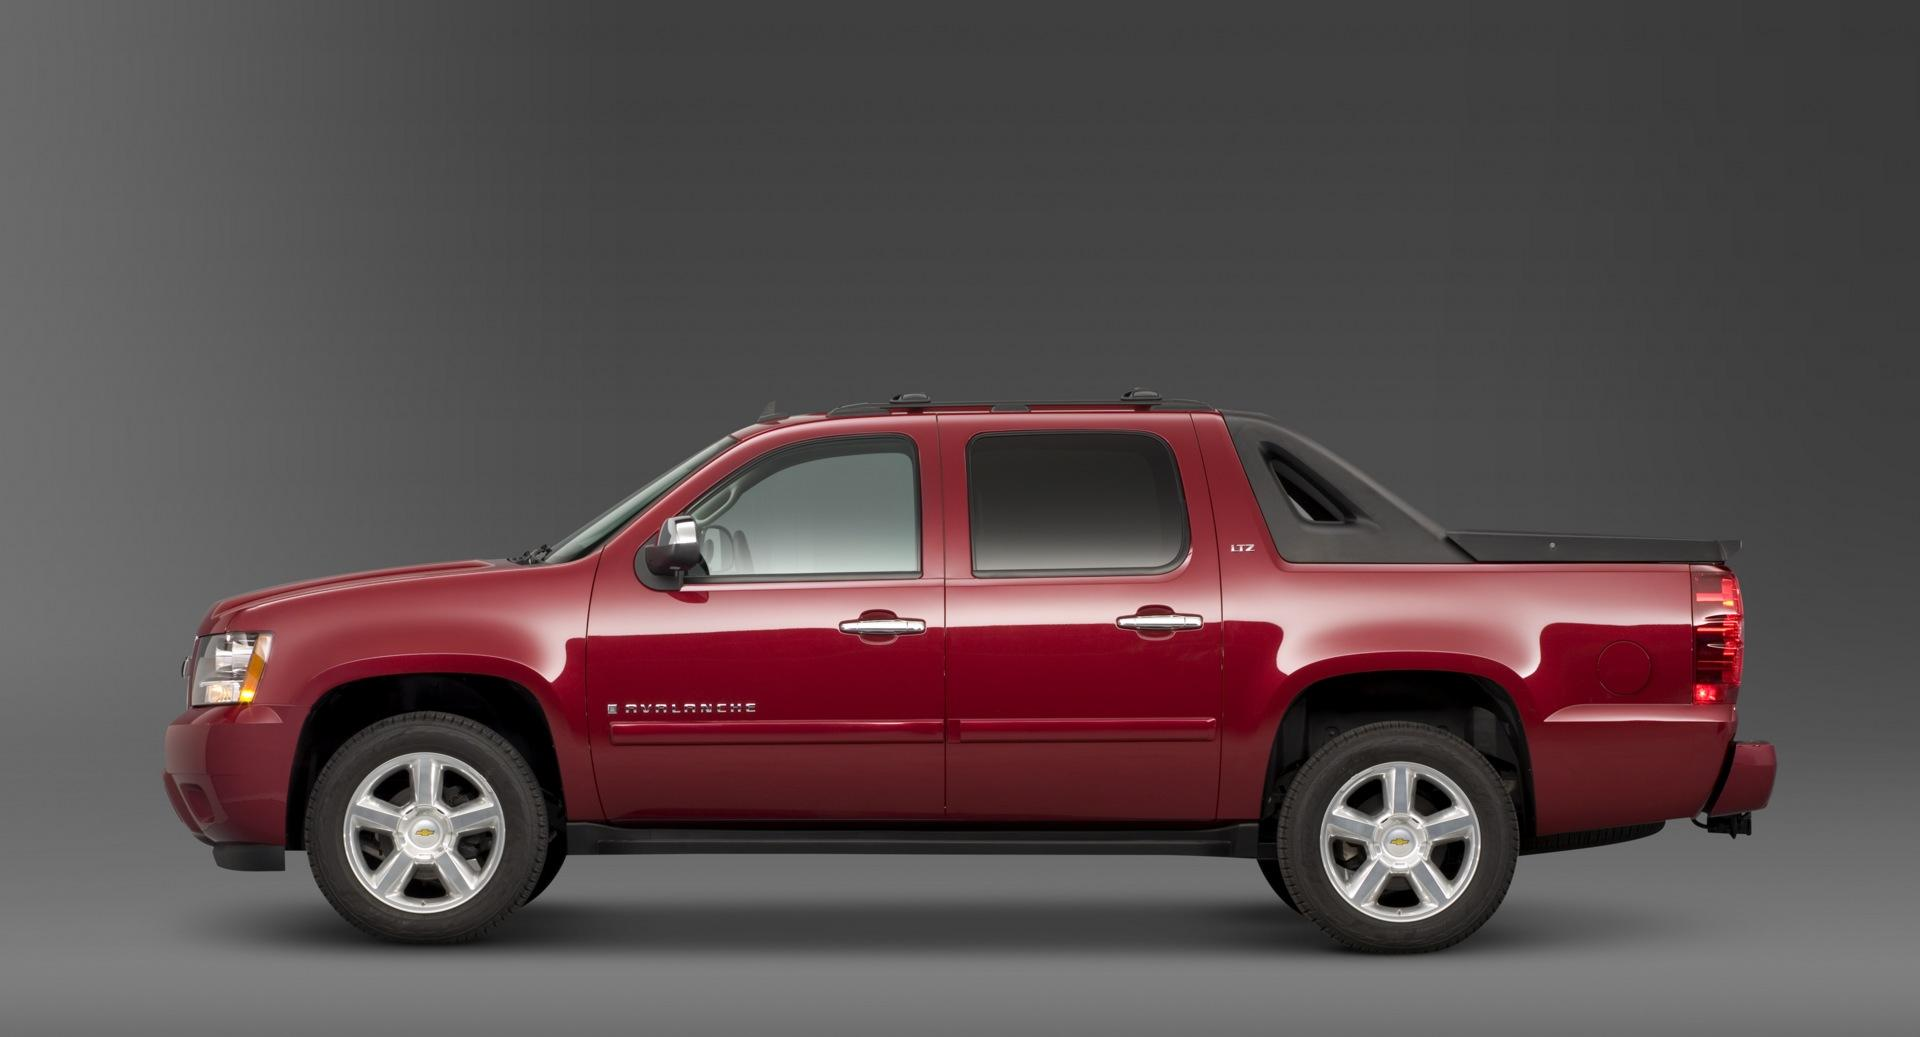 2008 chevrolet avalanche technical specifications and data. Black Bedroom Furniture Sets. Home Design Ideas